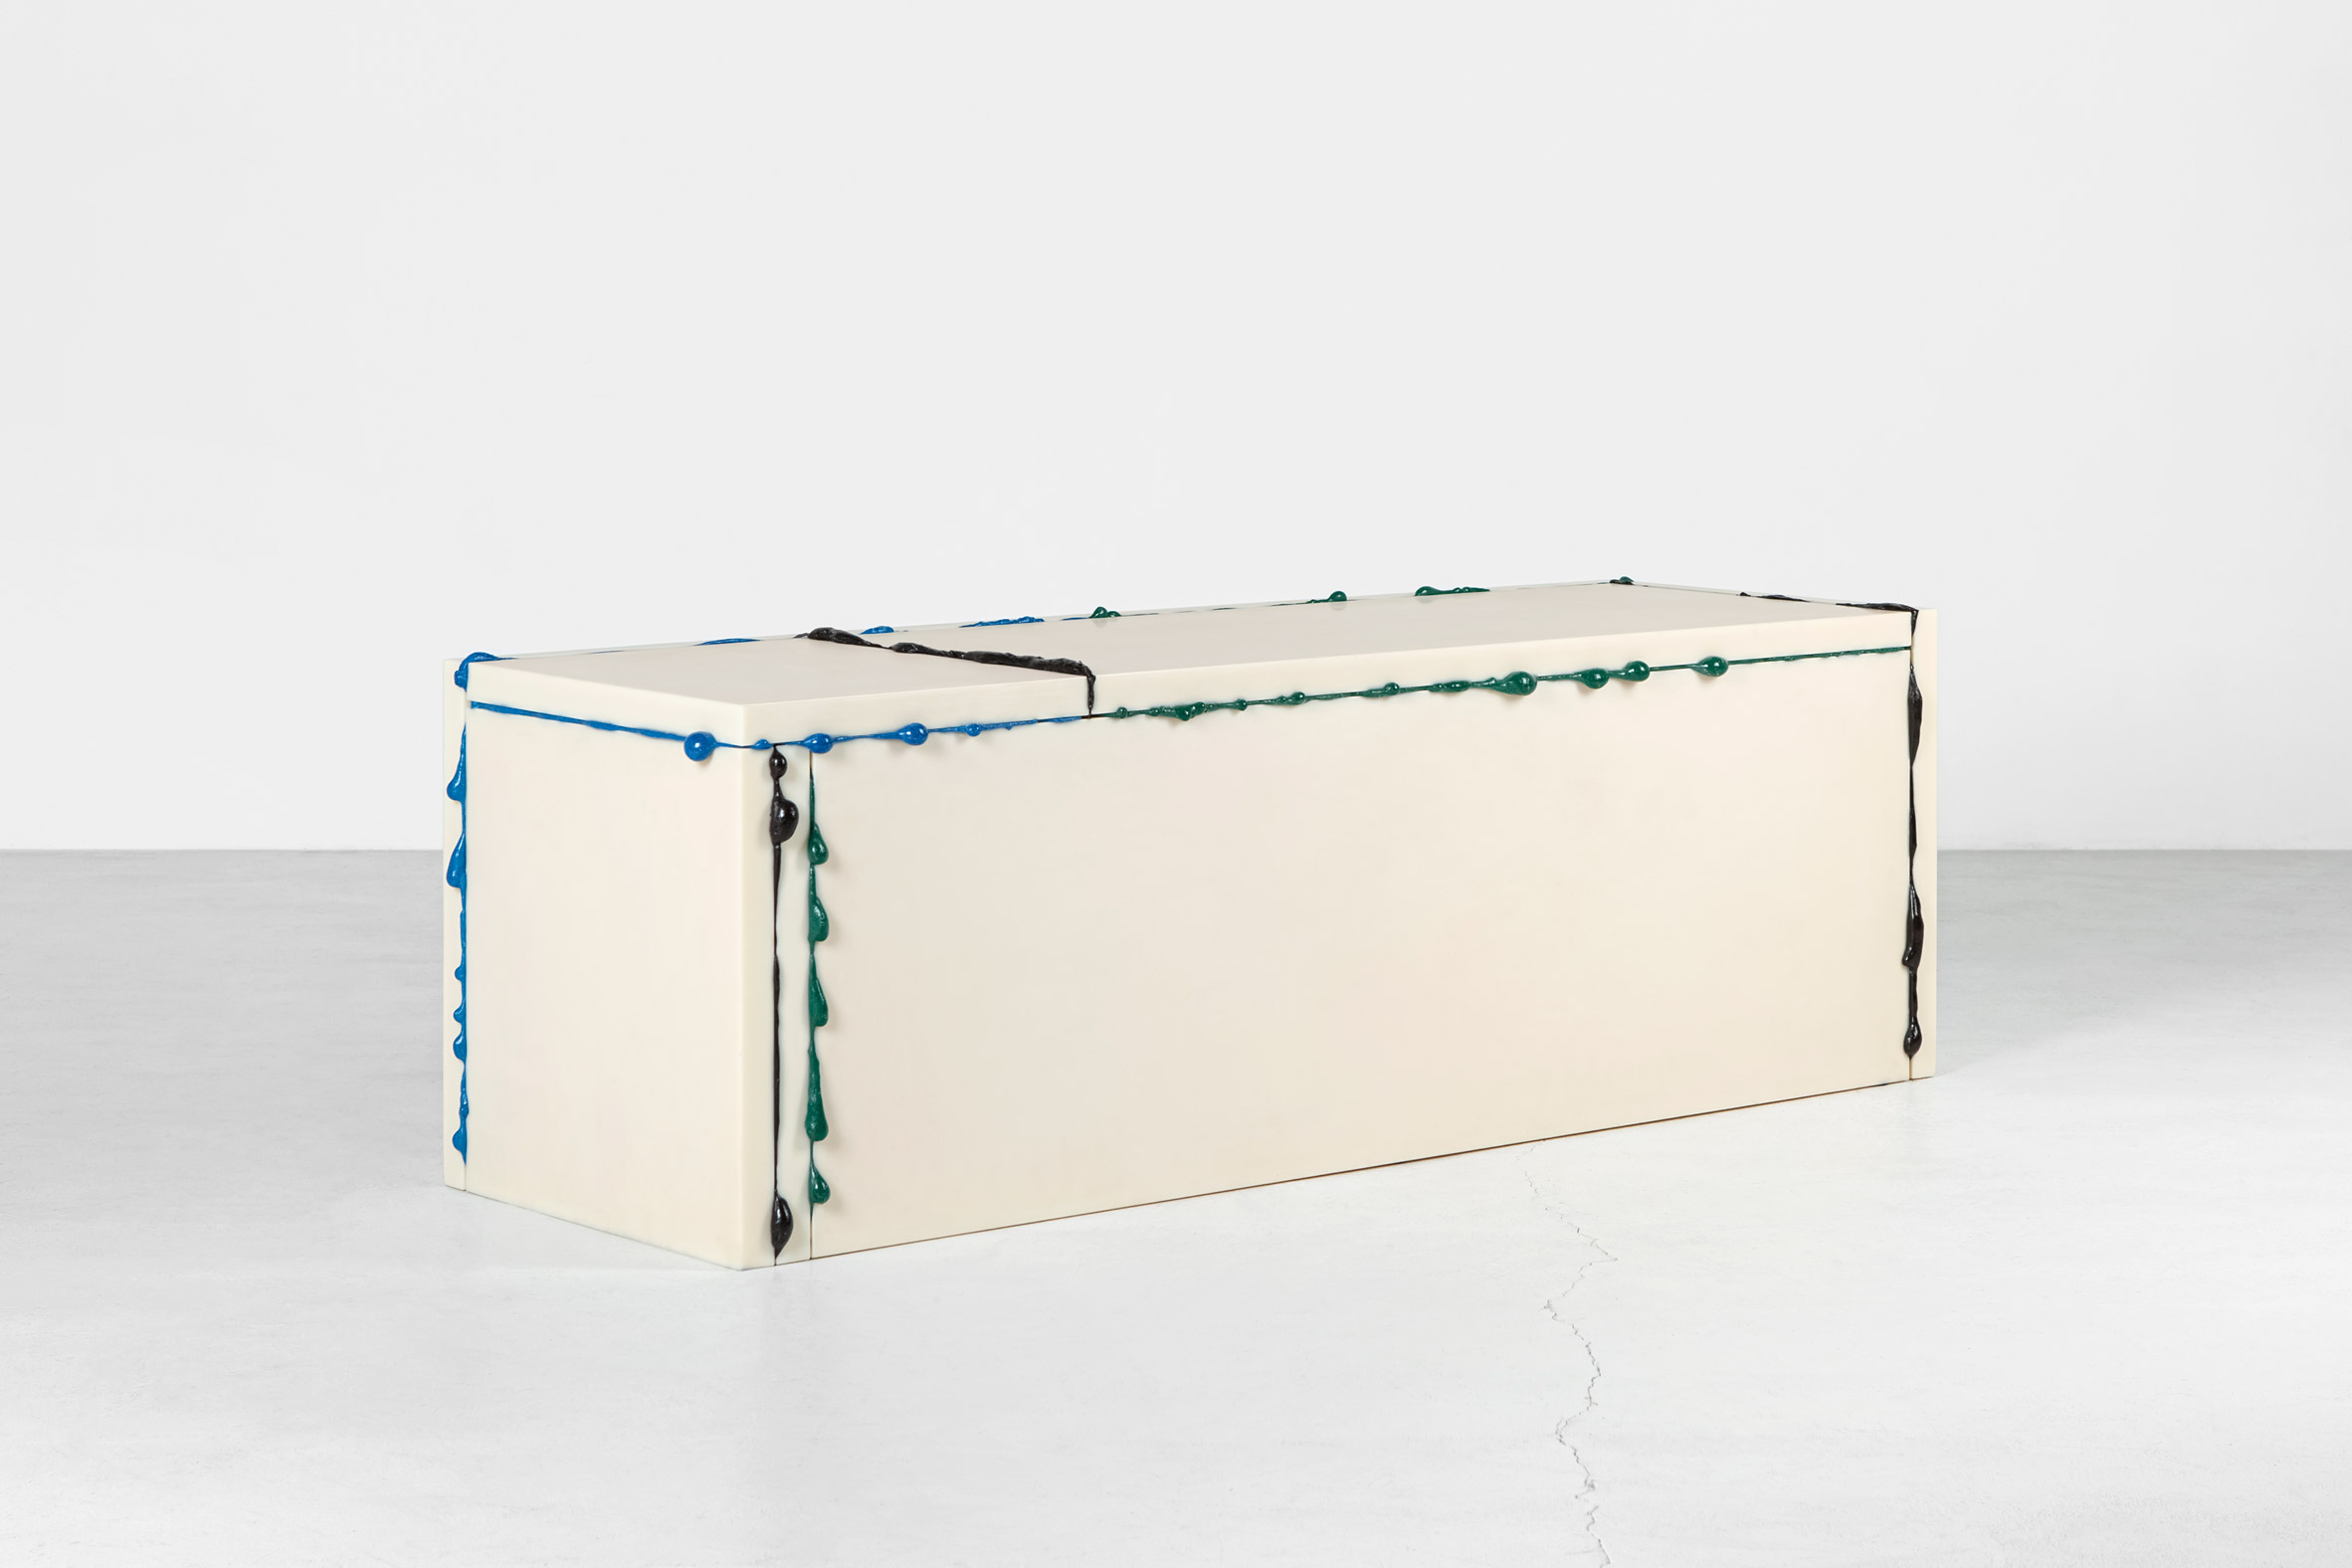 Bench from BSP furniture collection by Donghoon Sohn